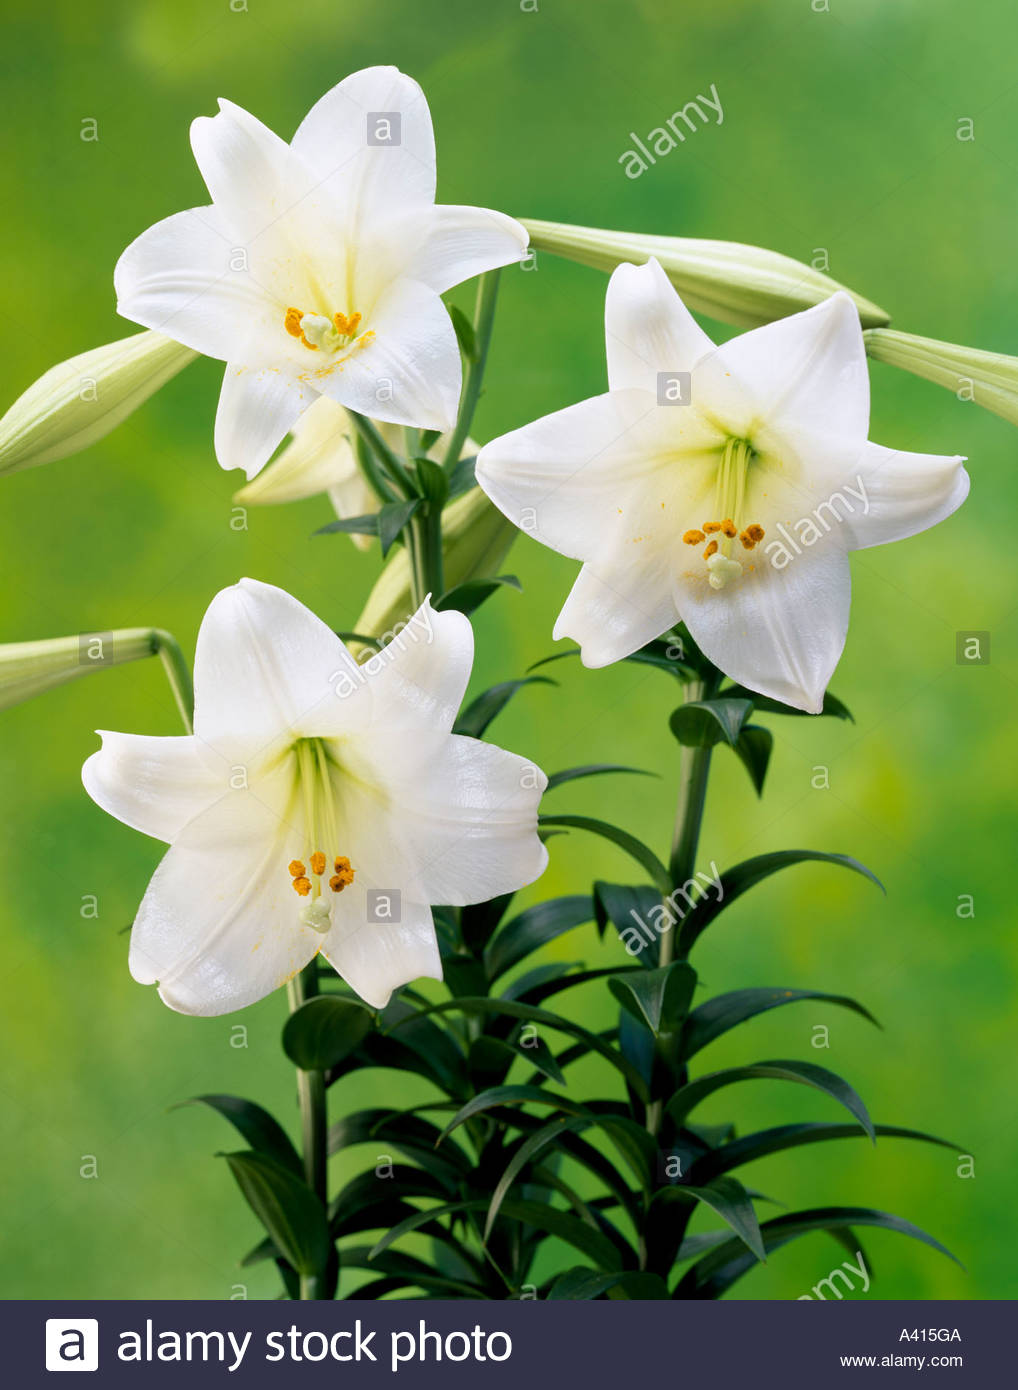 Gun lily trumpet lily japan flower plant lily white stock photo gun lily trumpet lily japan flower plant lily white dhlflorist Choice Image